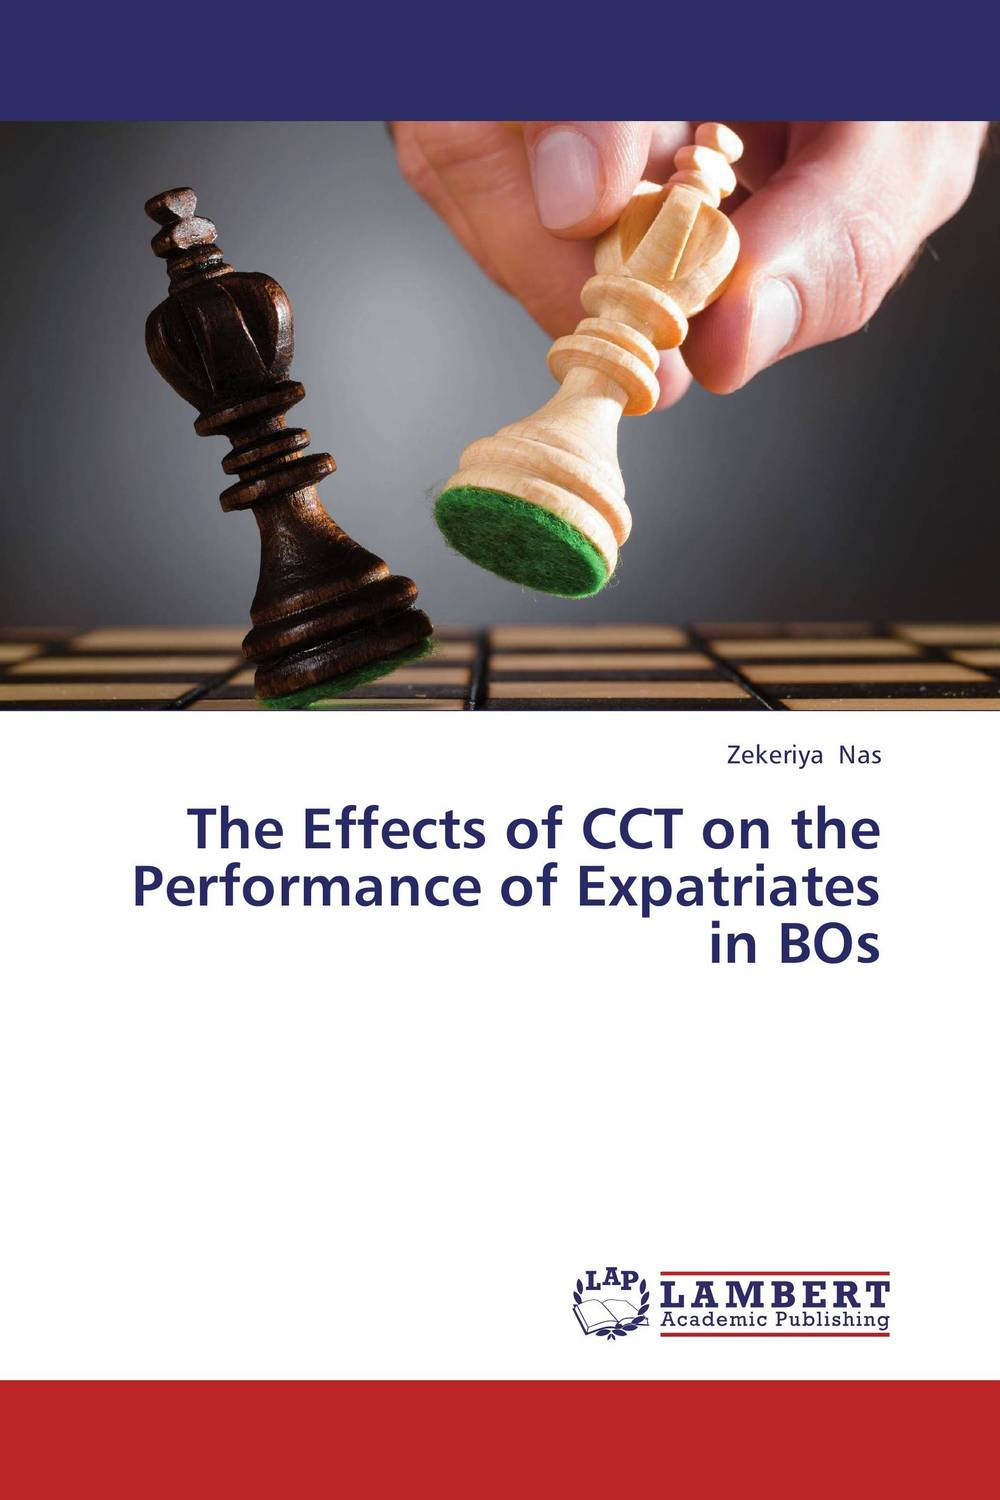 The Effects of CCT on the Performance of Expatriates in BOs cultural contingencies on performance